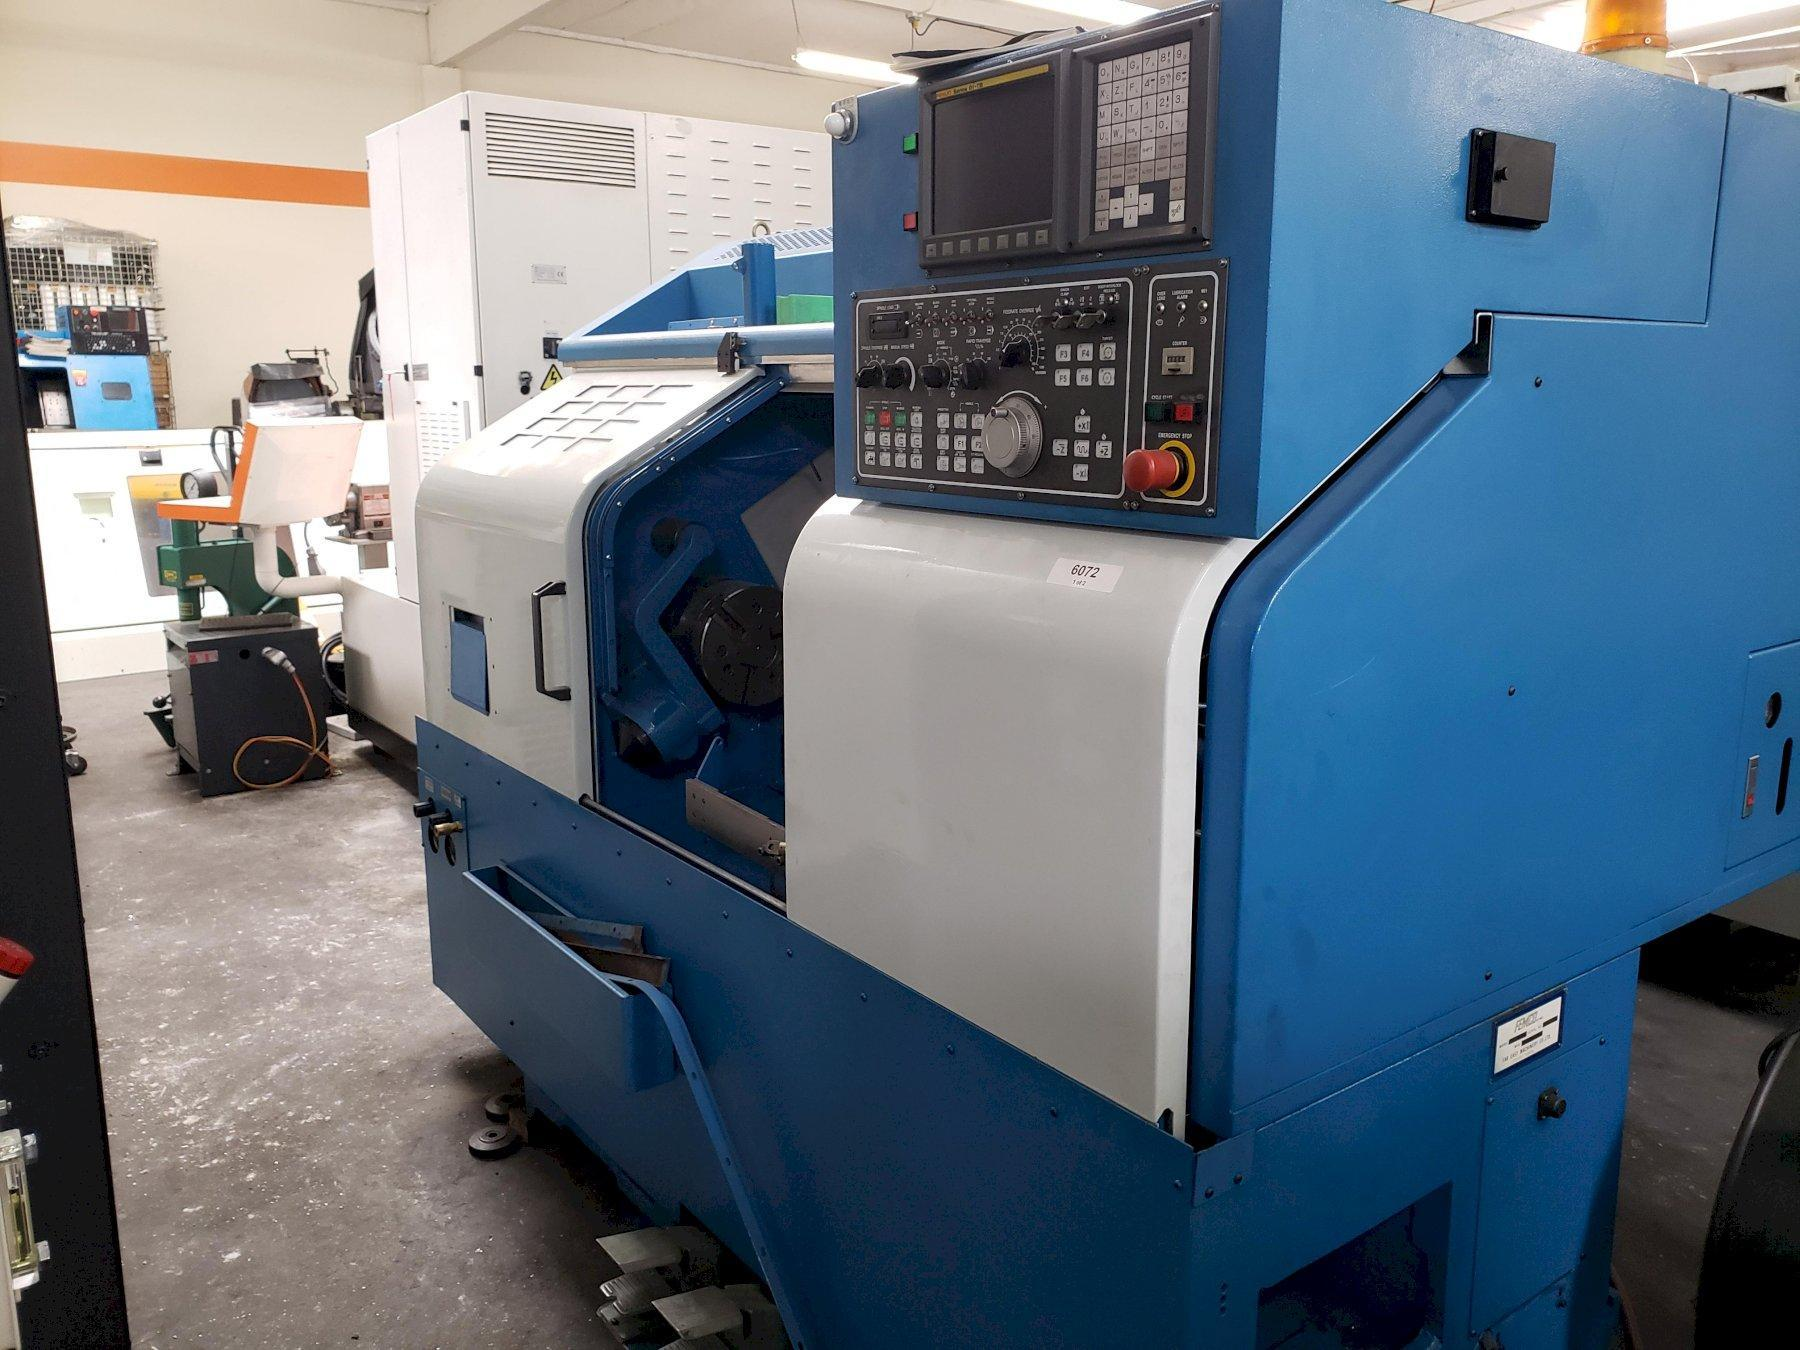 """Femco HL-25 CNC Lathe 2004, with Fanuc Oi-TB Control, 8"""" Chuck, Tool Presetter, Tailstock, and 12-Turret Chip Conveyor."""